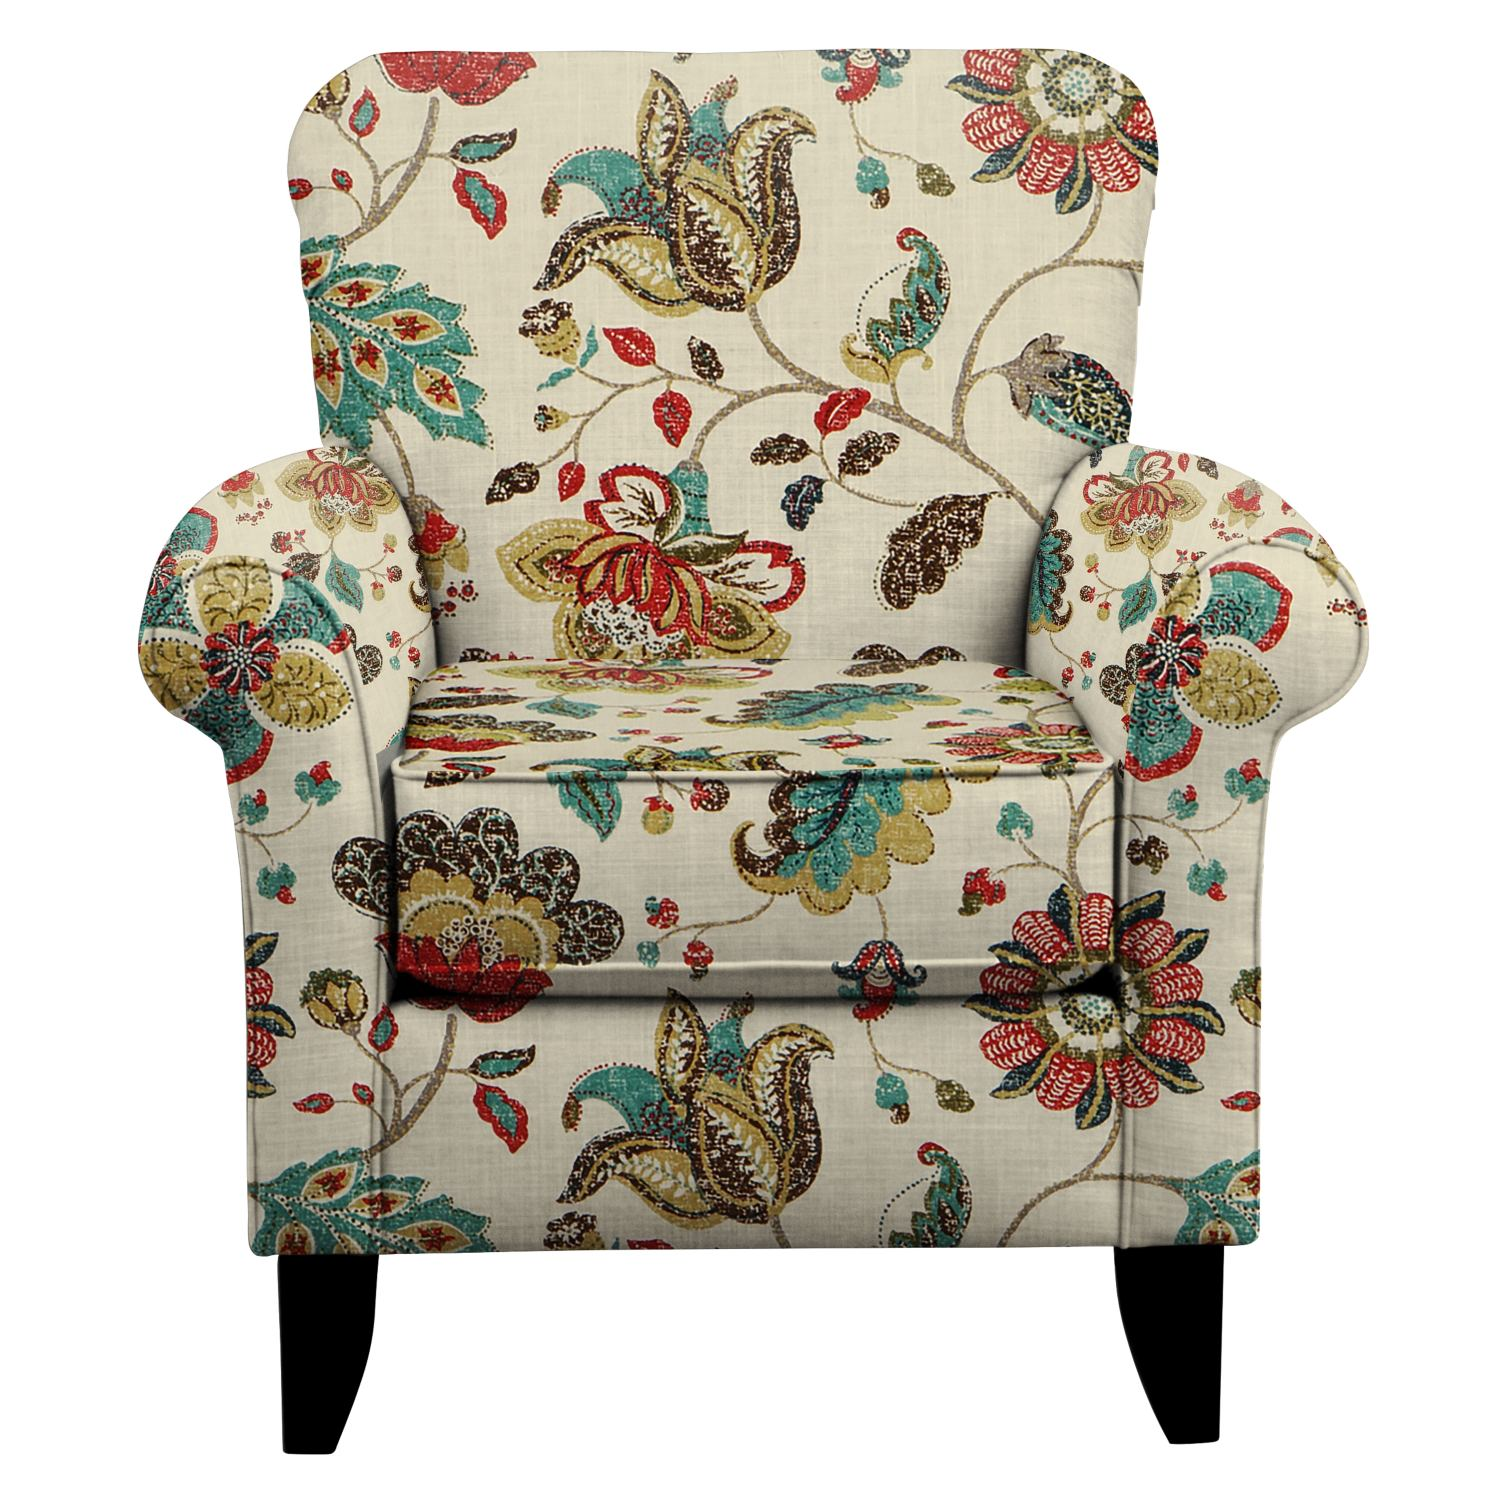 Bon Living Room Furniture   Tracy Chair W/ Spring Mix Poppy Fabric